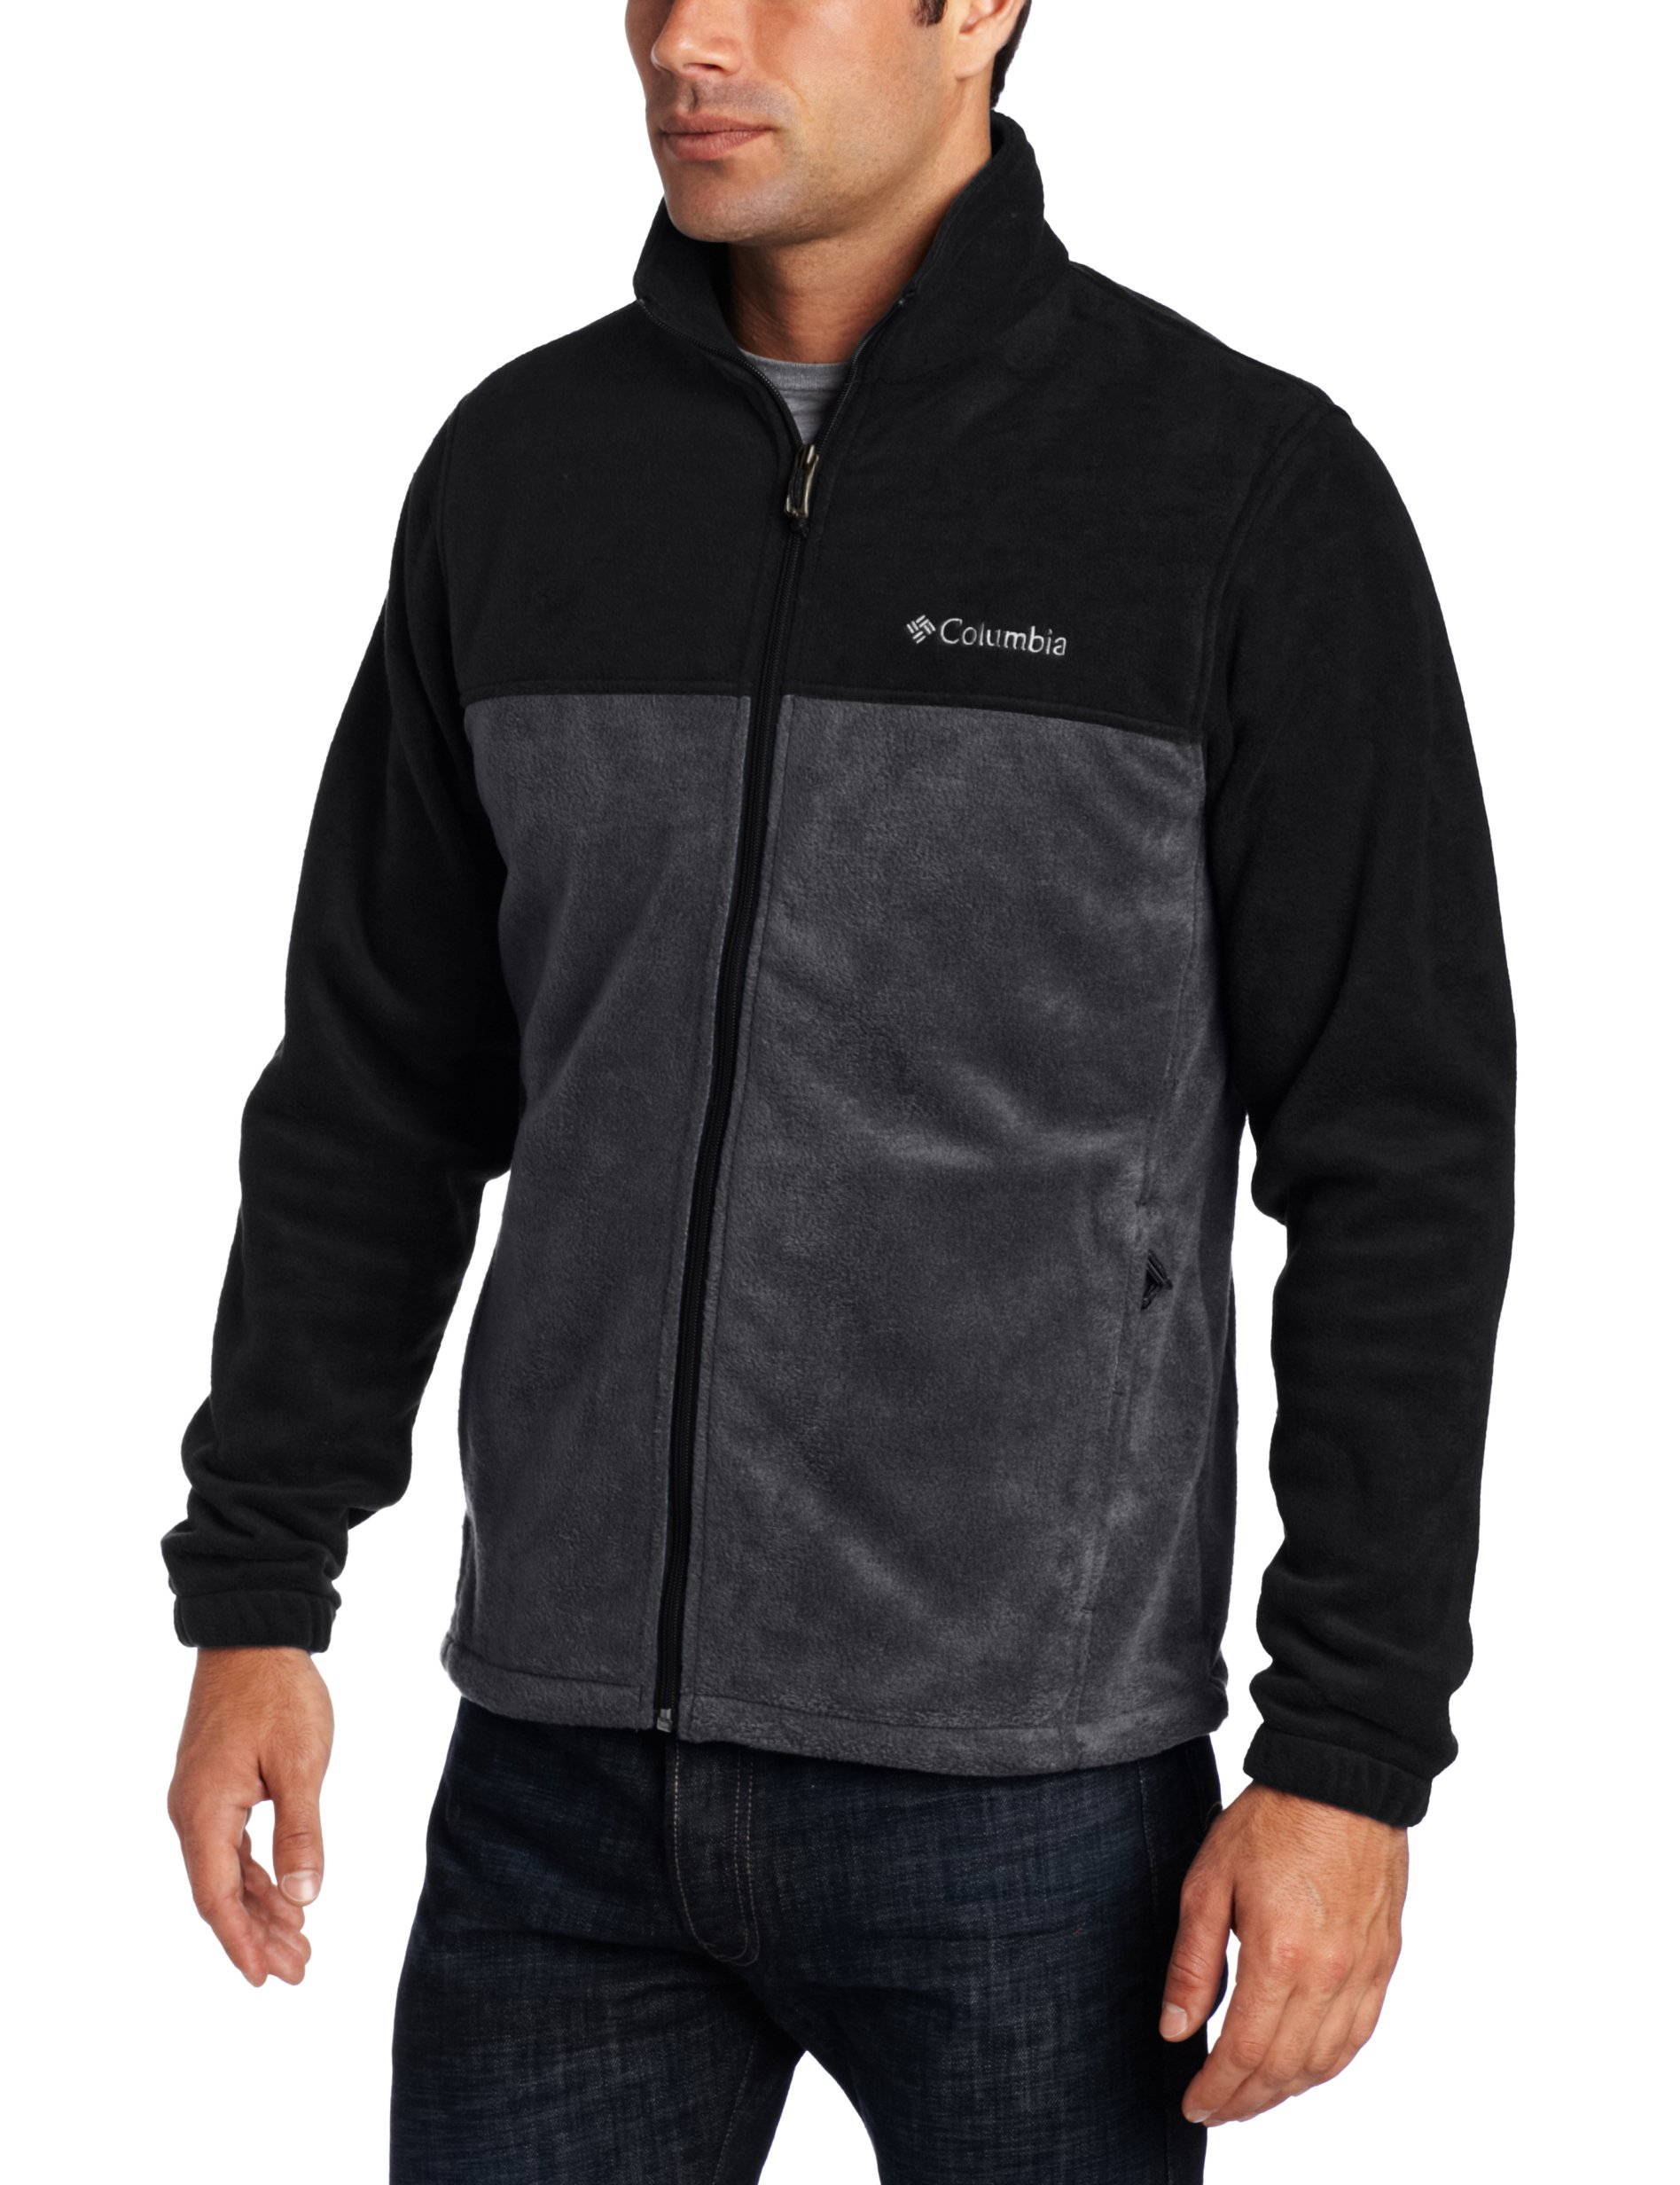 Columbia Men's Tall Steens Mountain Full Zip 2.0 Fleece Jacket, Black/Grill, Large/Tall